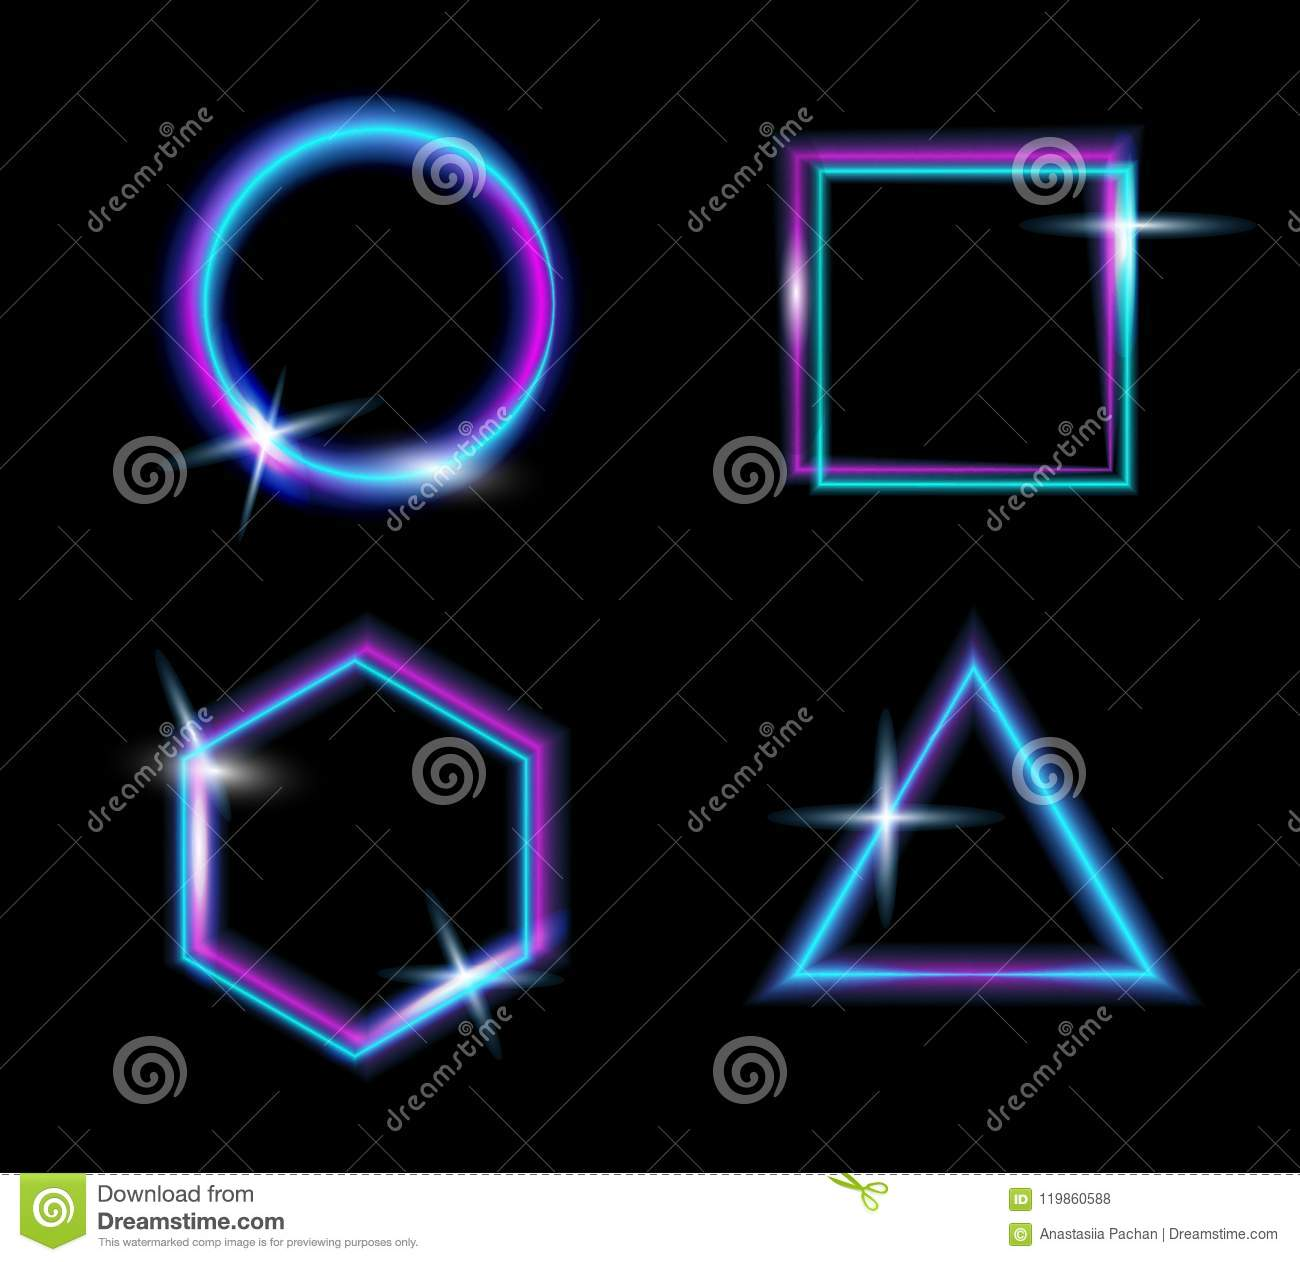 348938de set-neon-glow-light-glow-abstract-background-vector-glitch-effect-modern- frame-abstract-bright-neon-loop-transparency-119860588.jpg